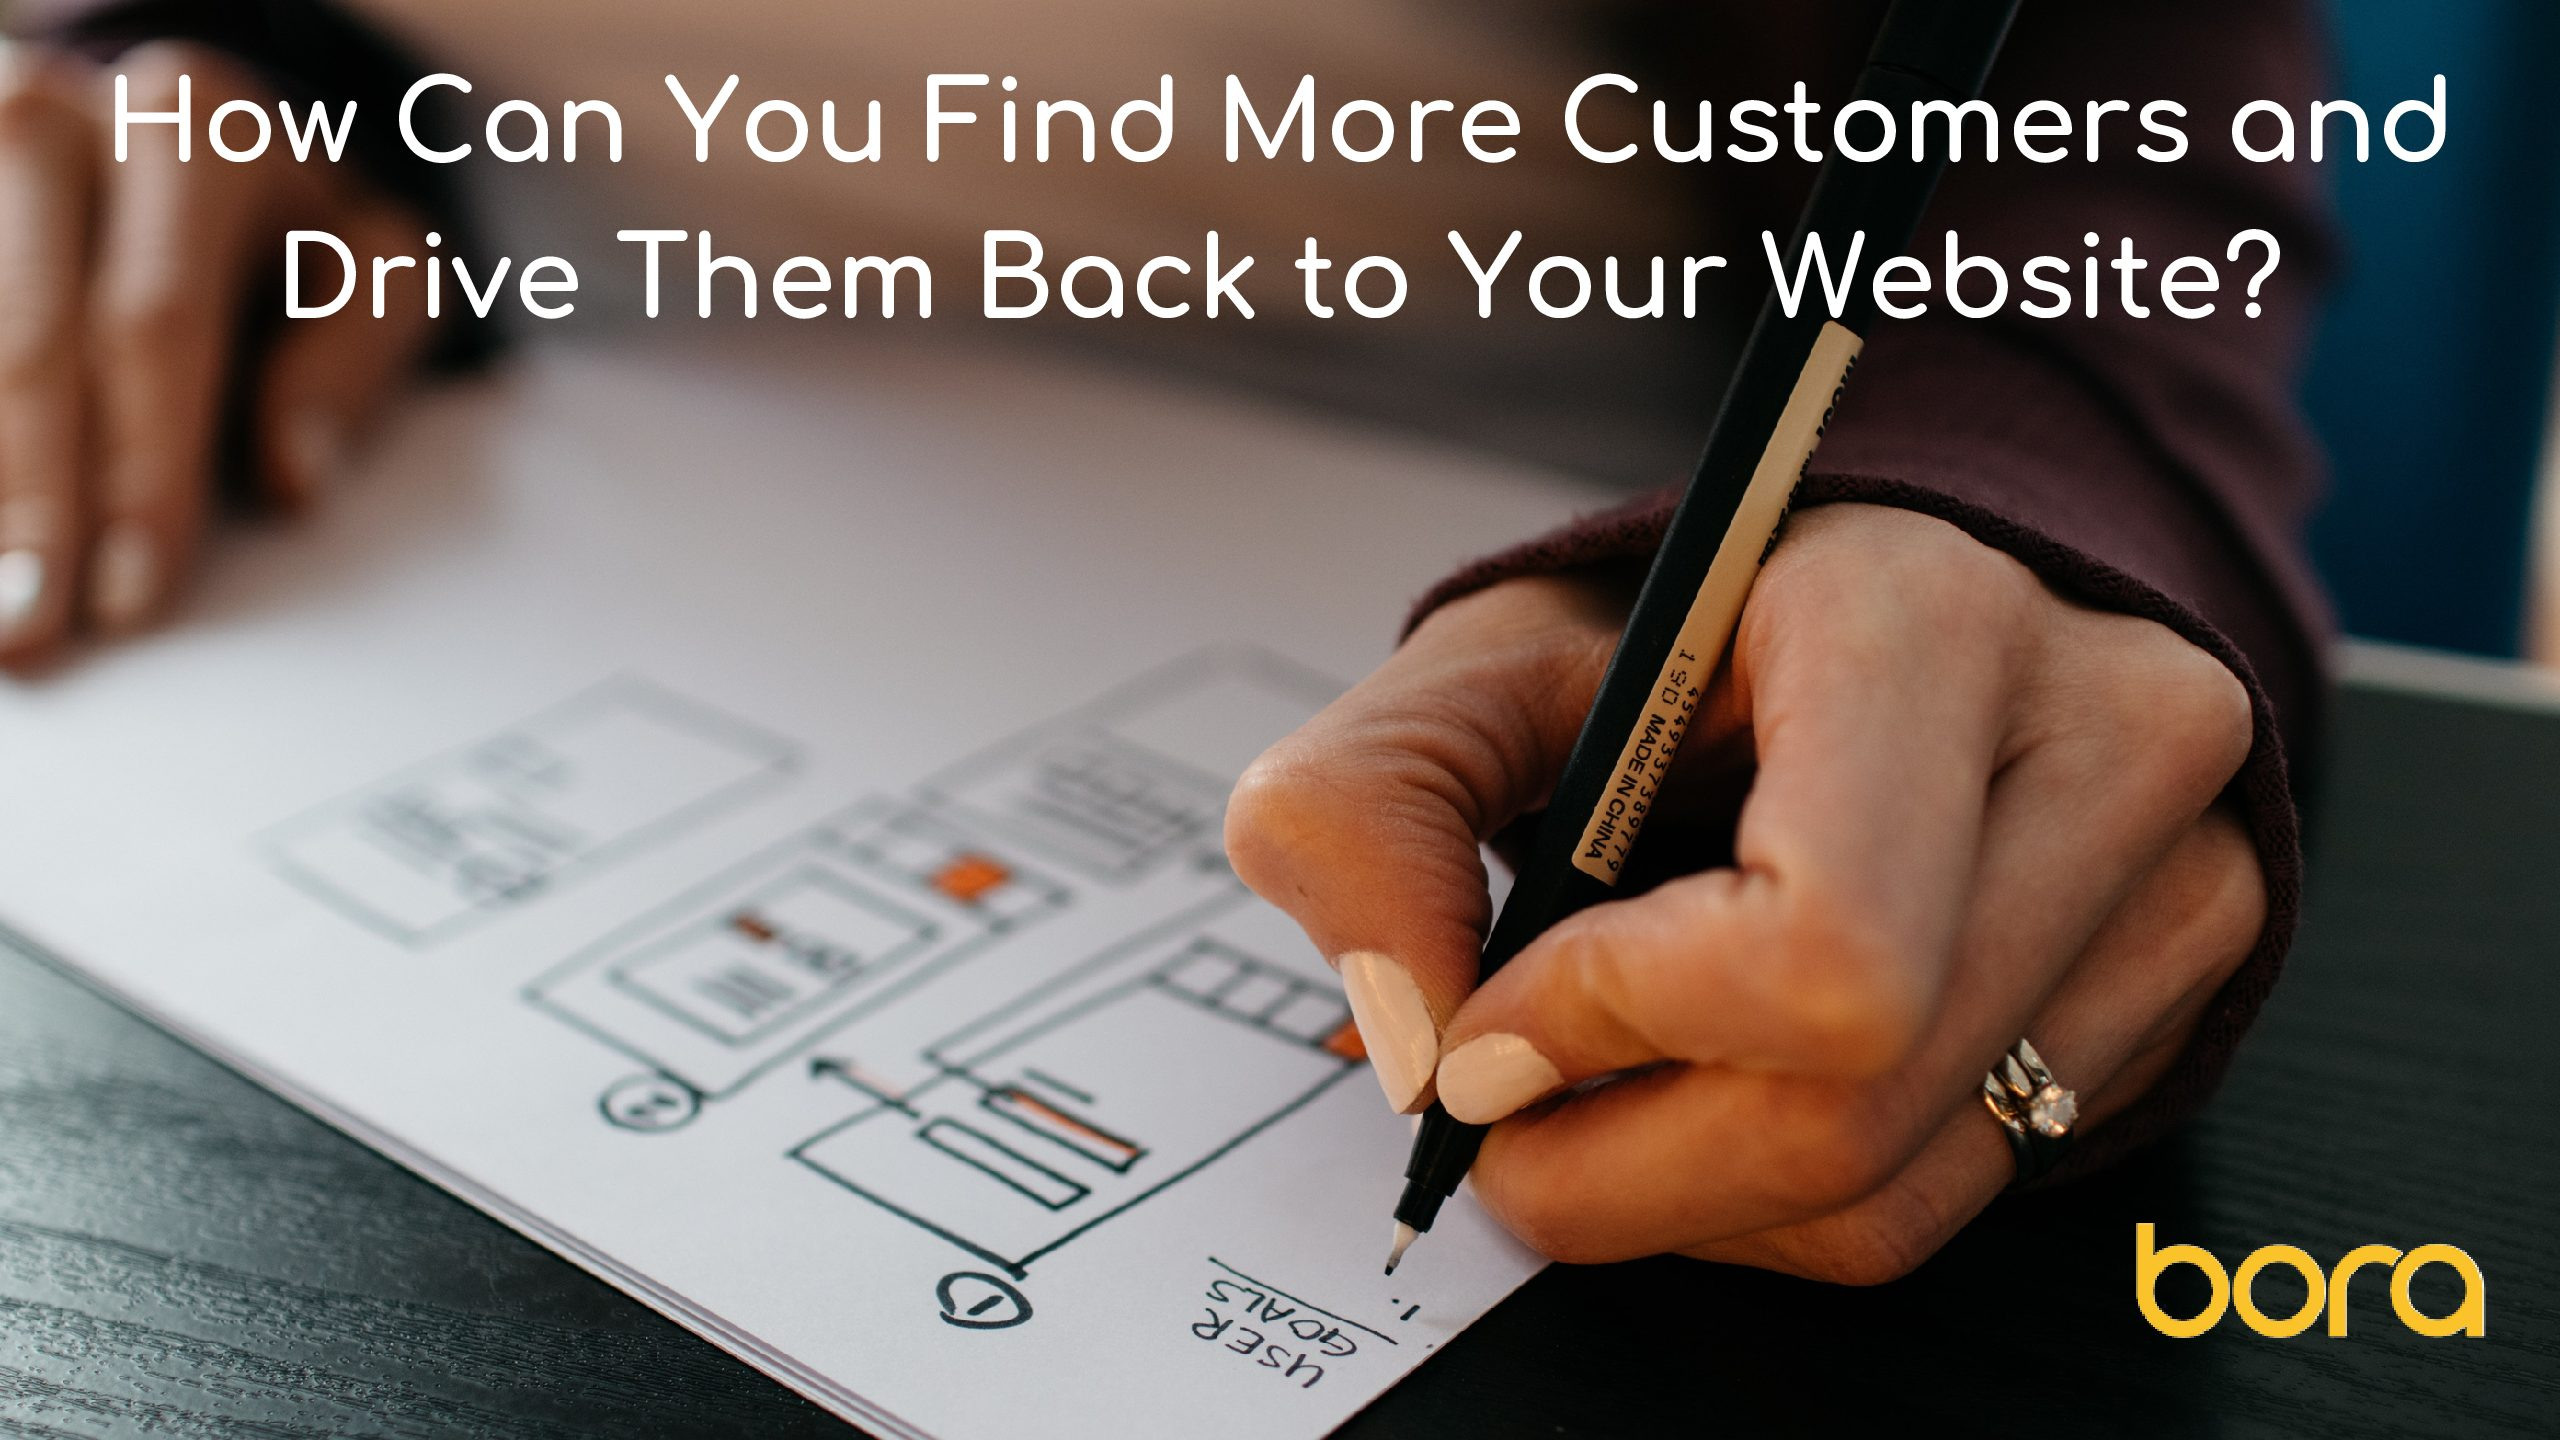 How Can You Find More Customers And Drive Them Back To Your Website?